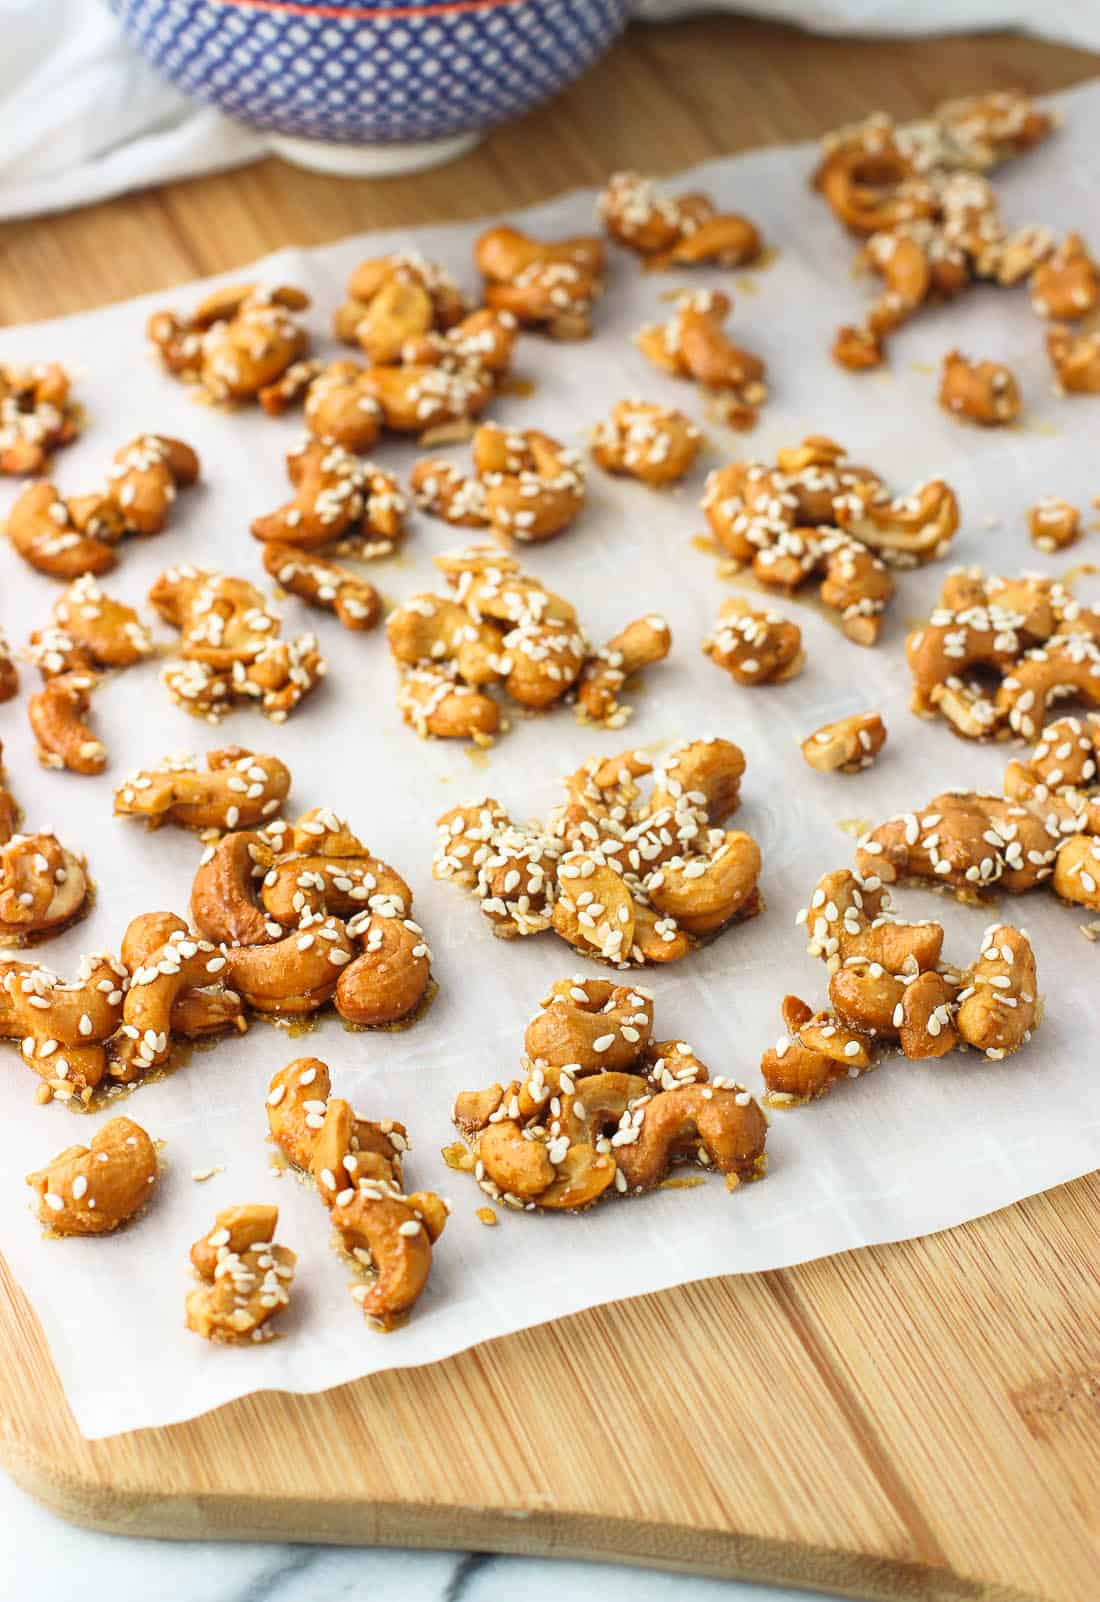 Cashew clusters on a sheet of parchment paper on a wooden board